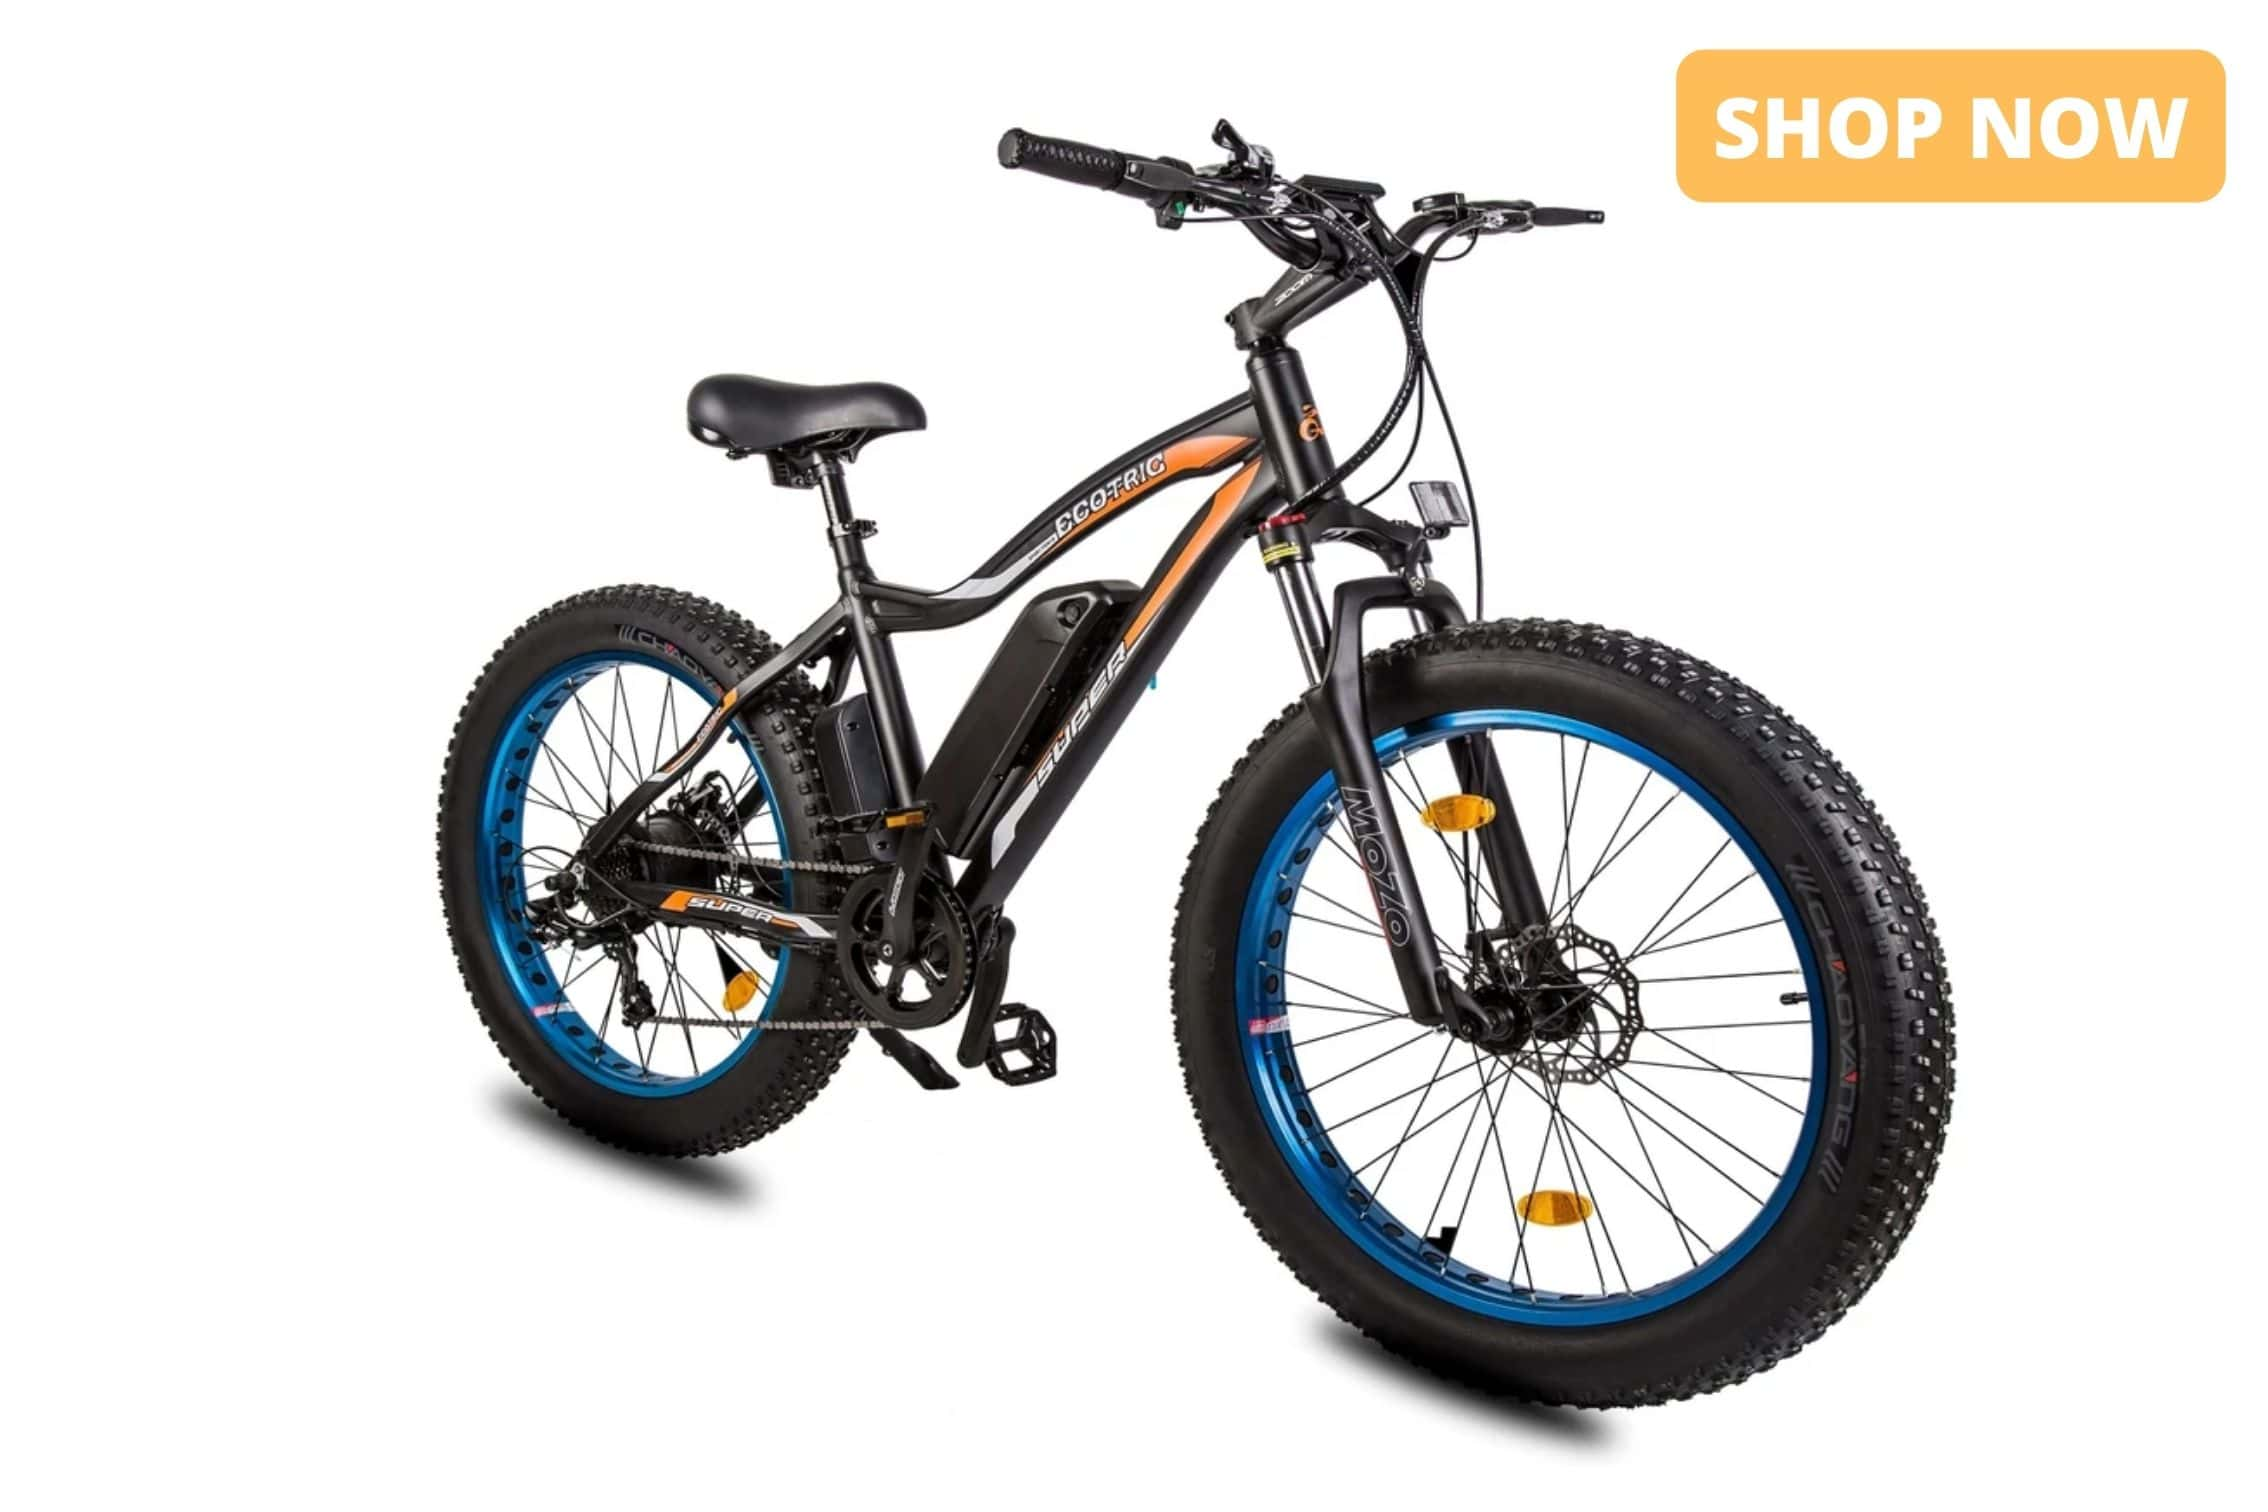 Ecotric Rocket Electric Bike Product Page